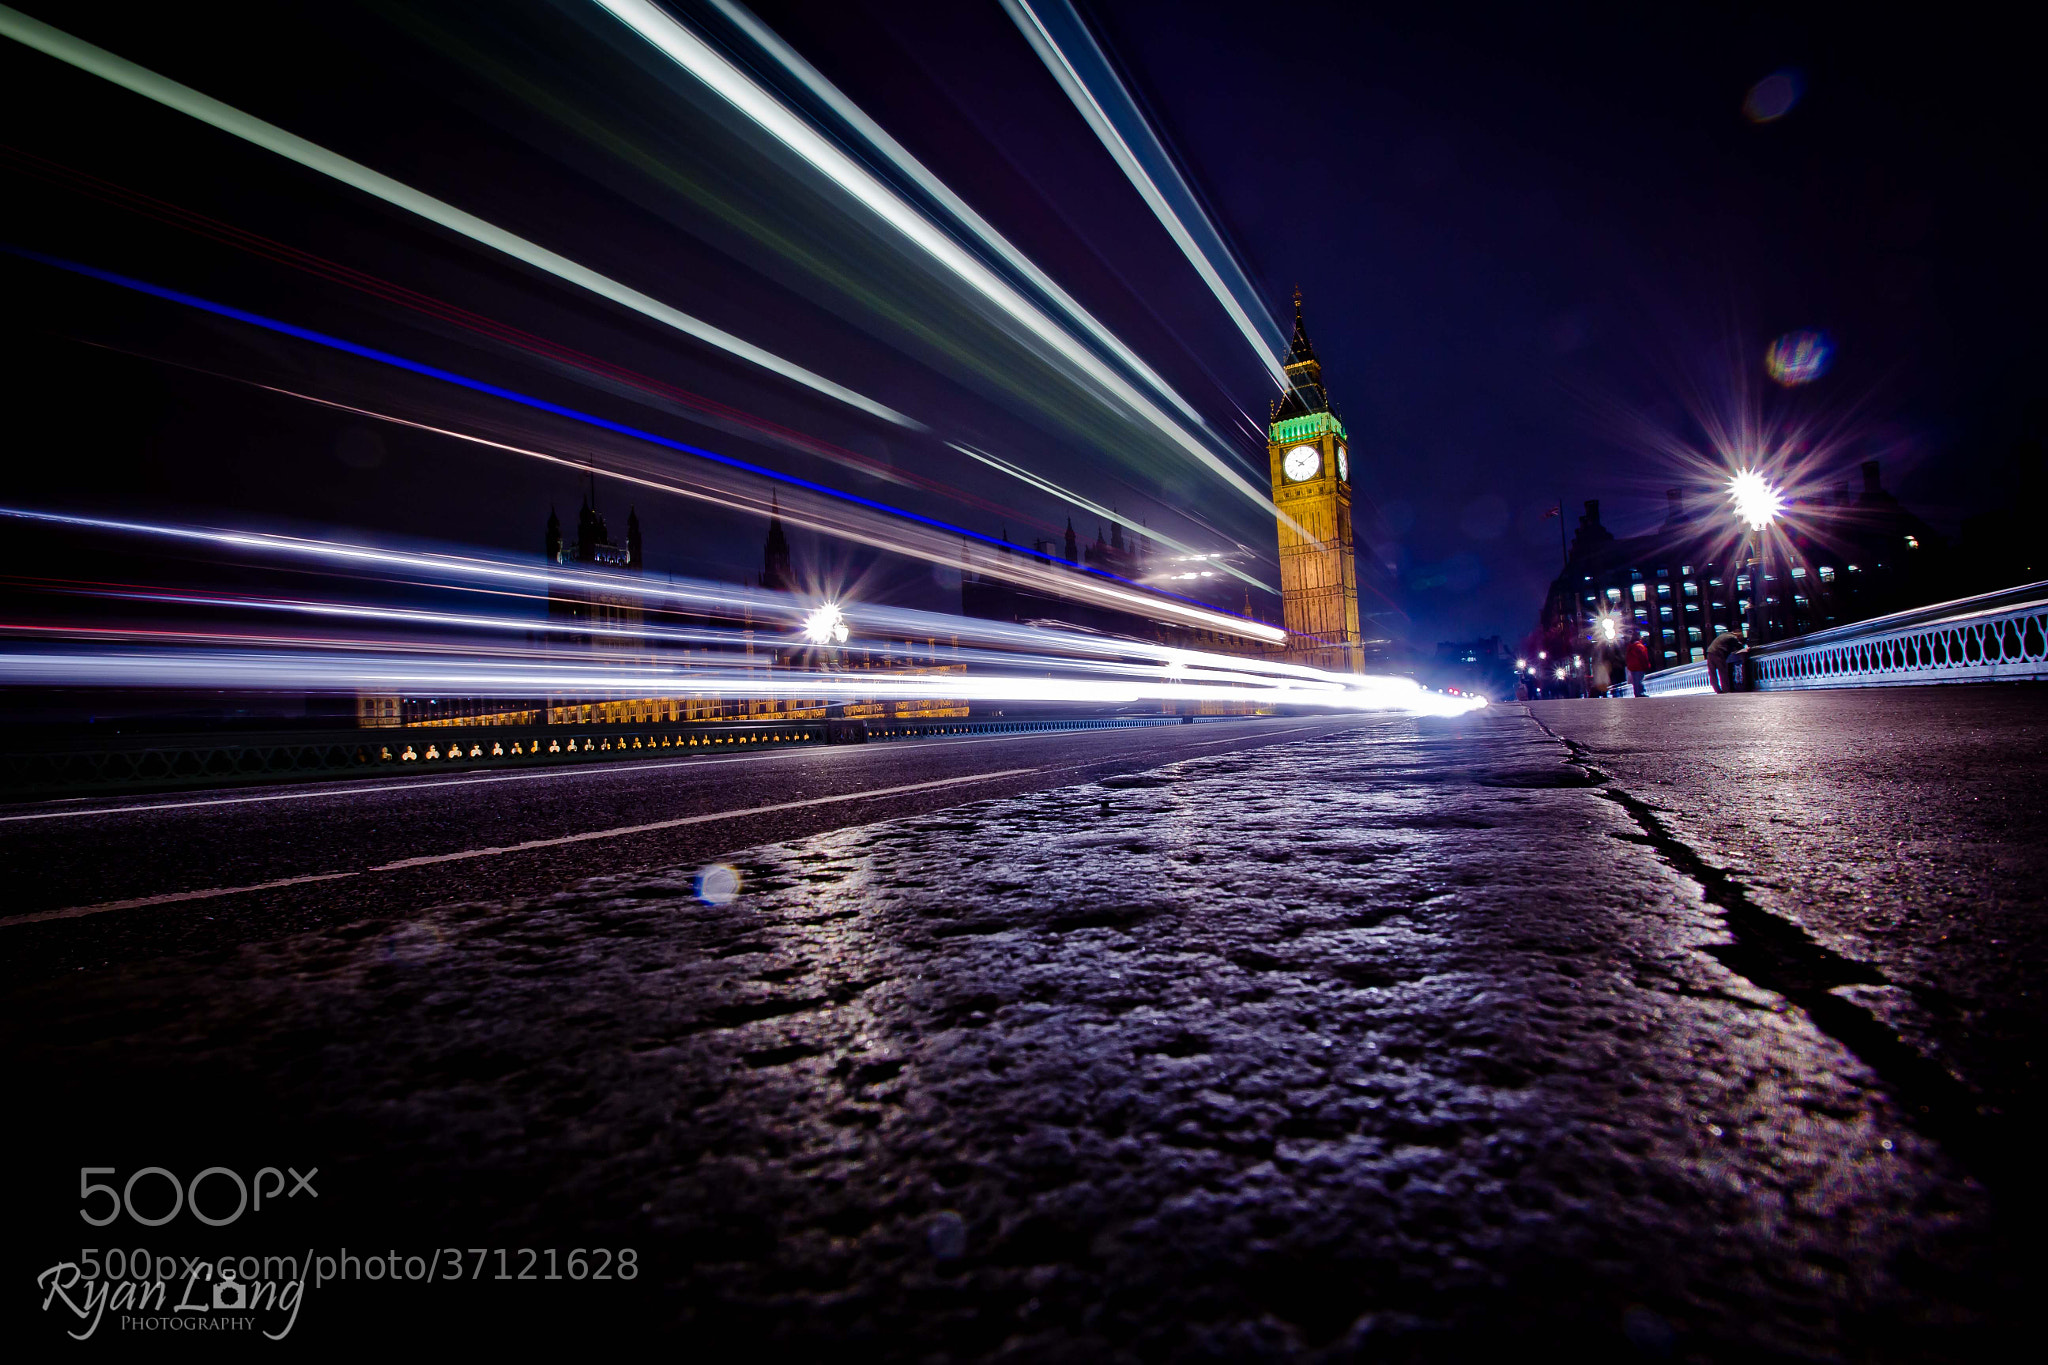 Photograph Big Ben at night by R Long on 500px